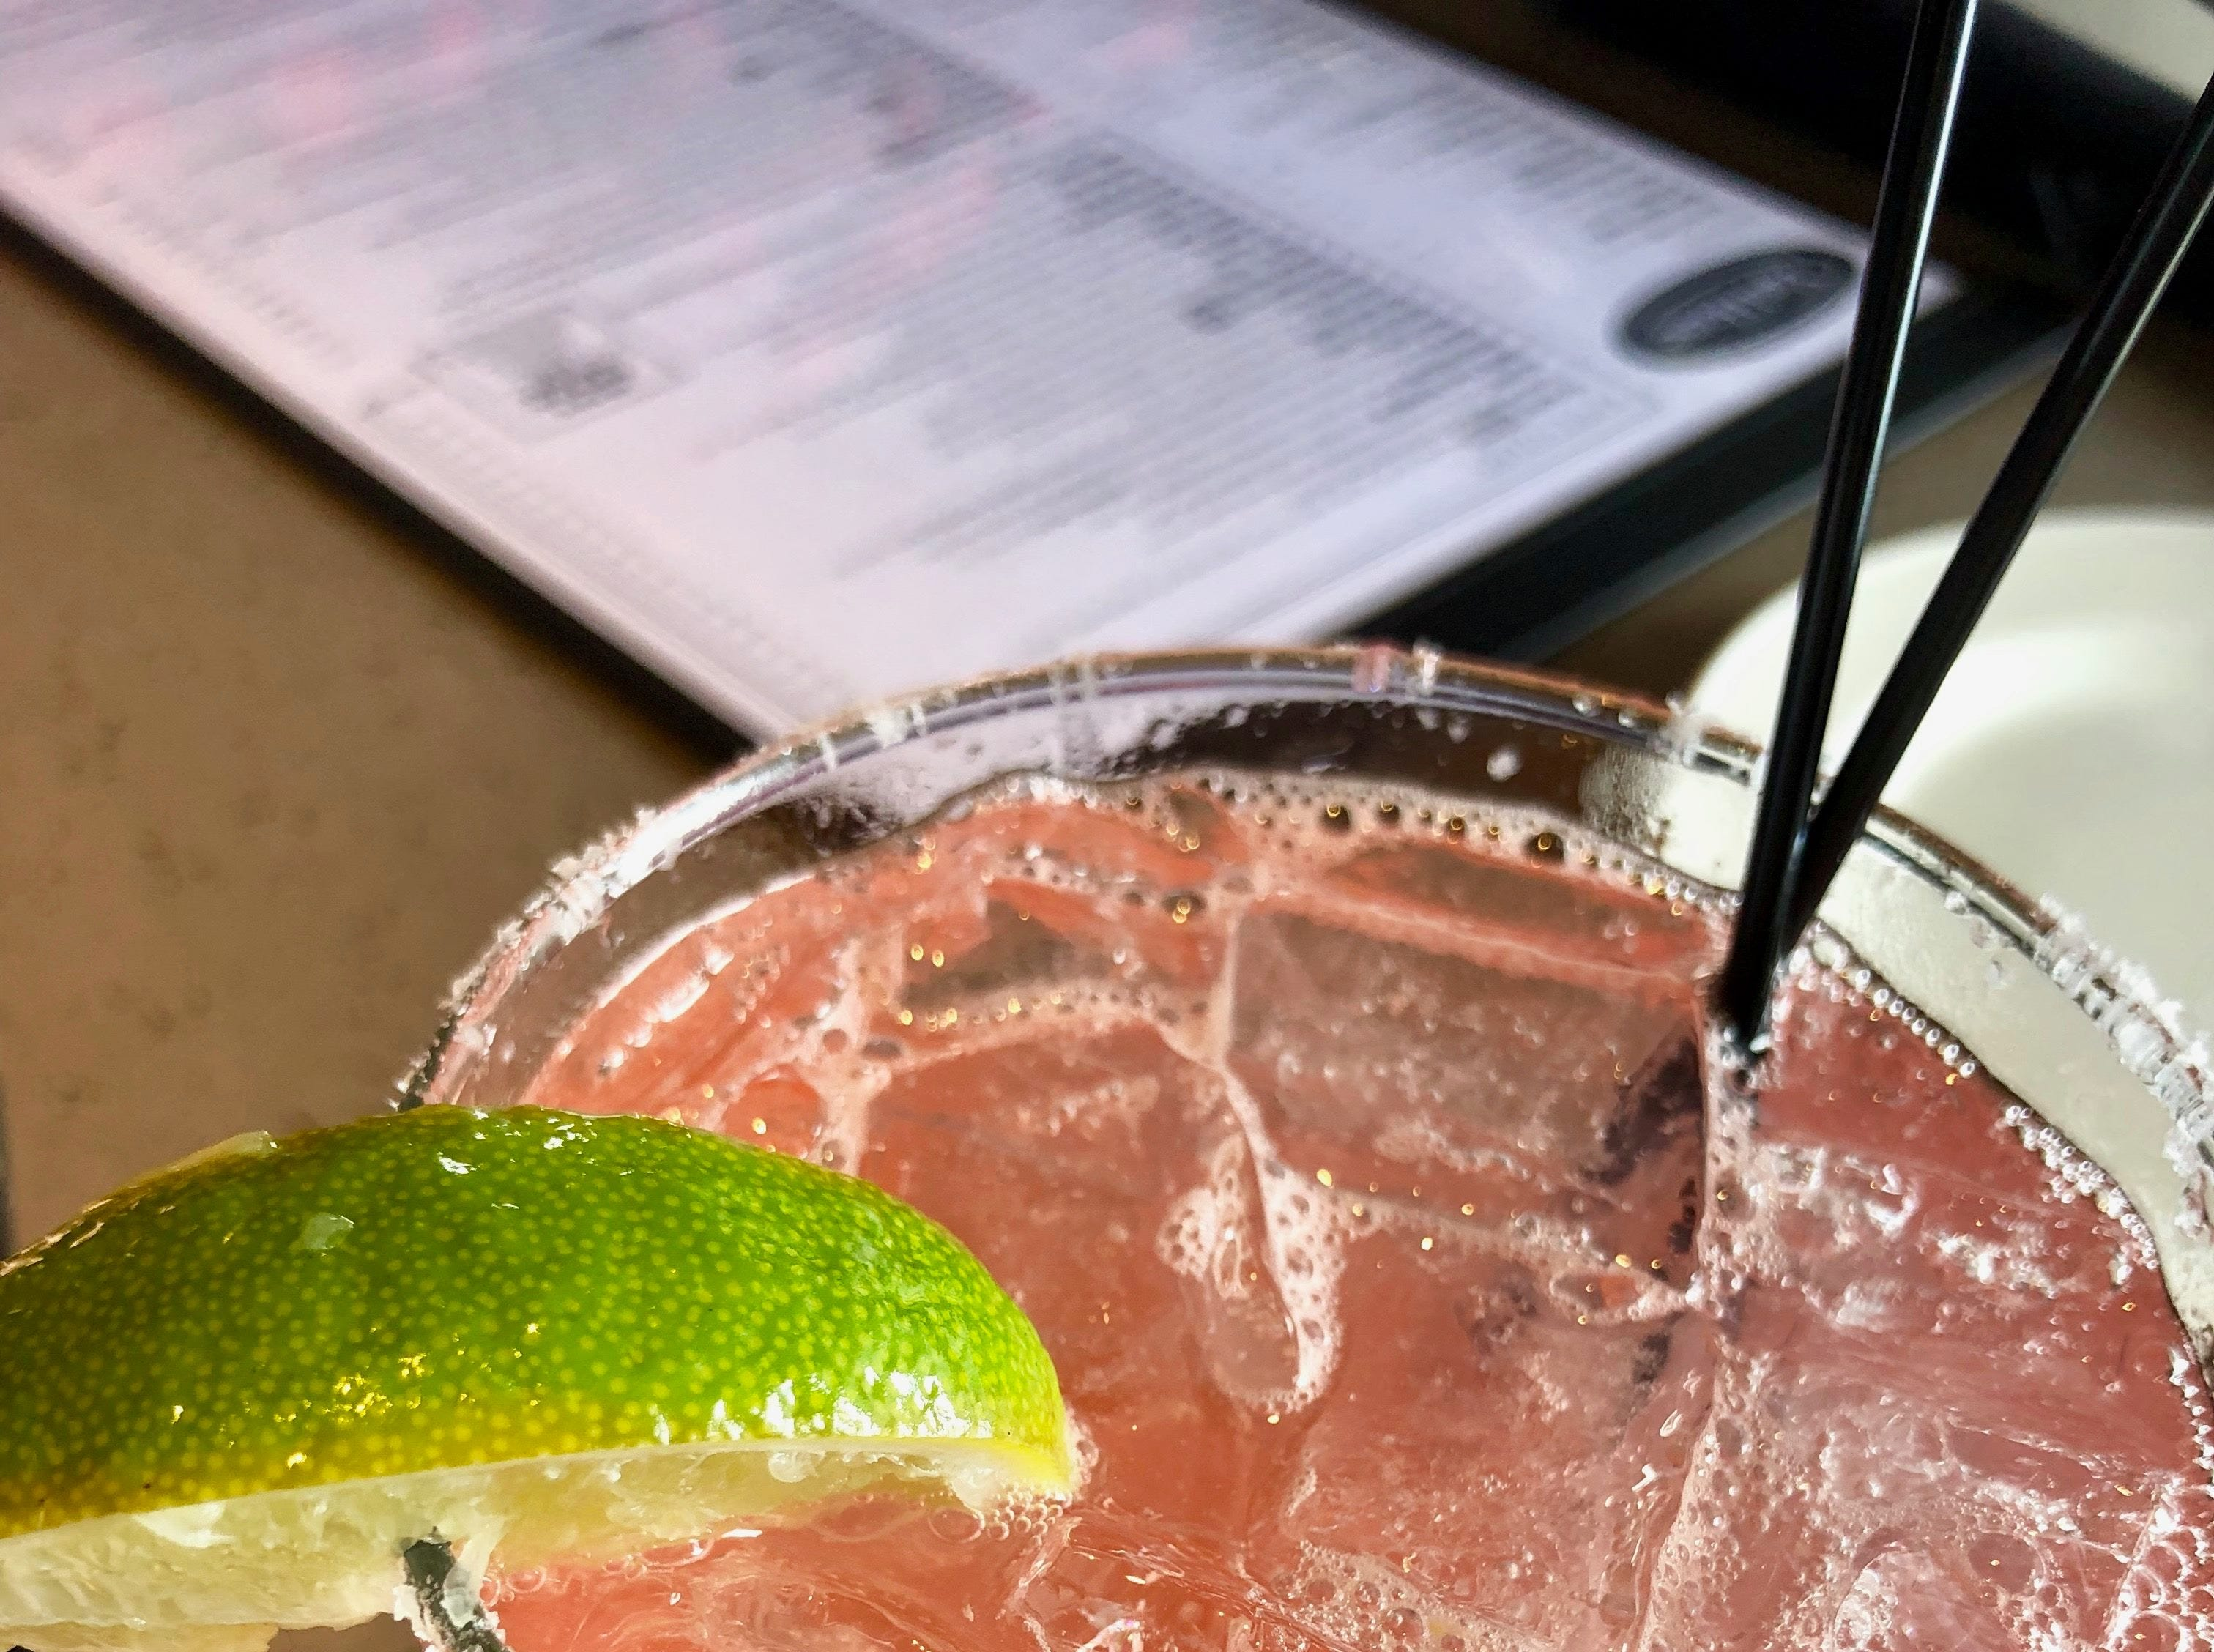 Besides an extensive beer list, Yard House also offers a menu of thoughtful craft cocktails, like this salted watermelon margarita.